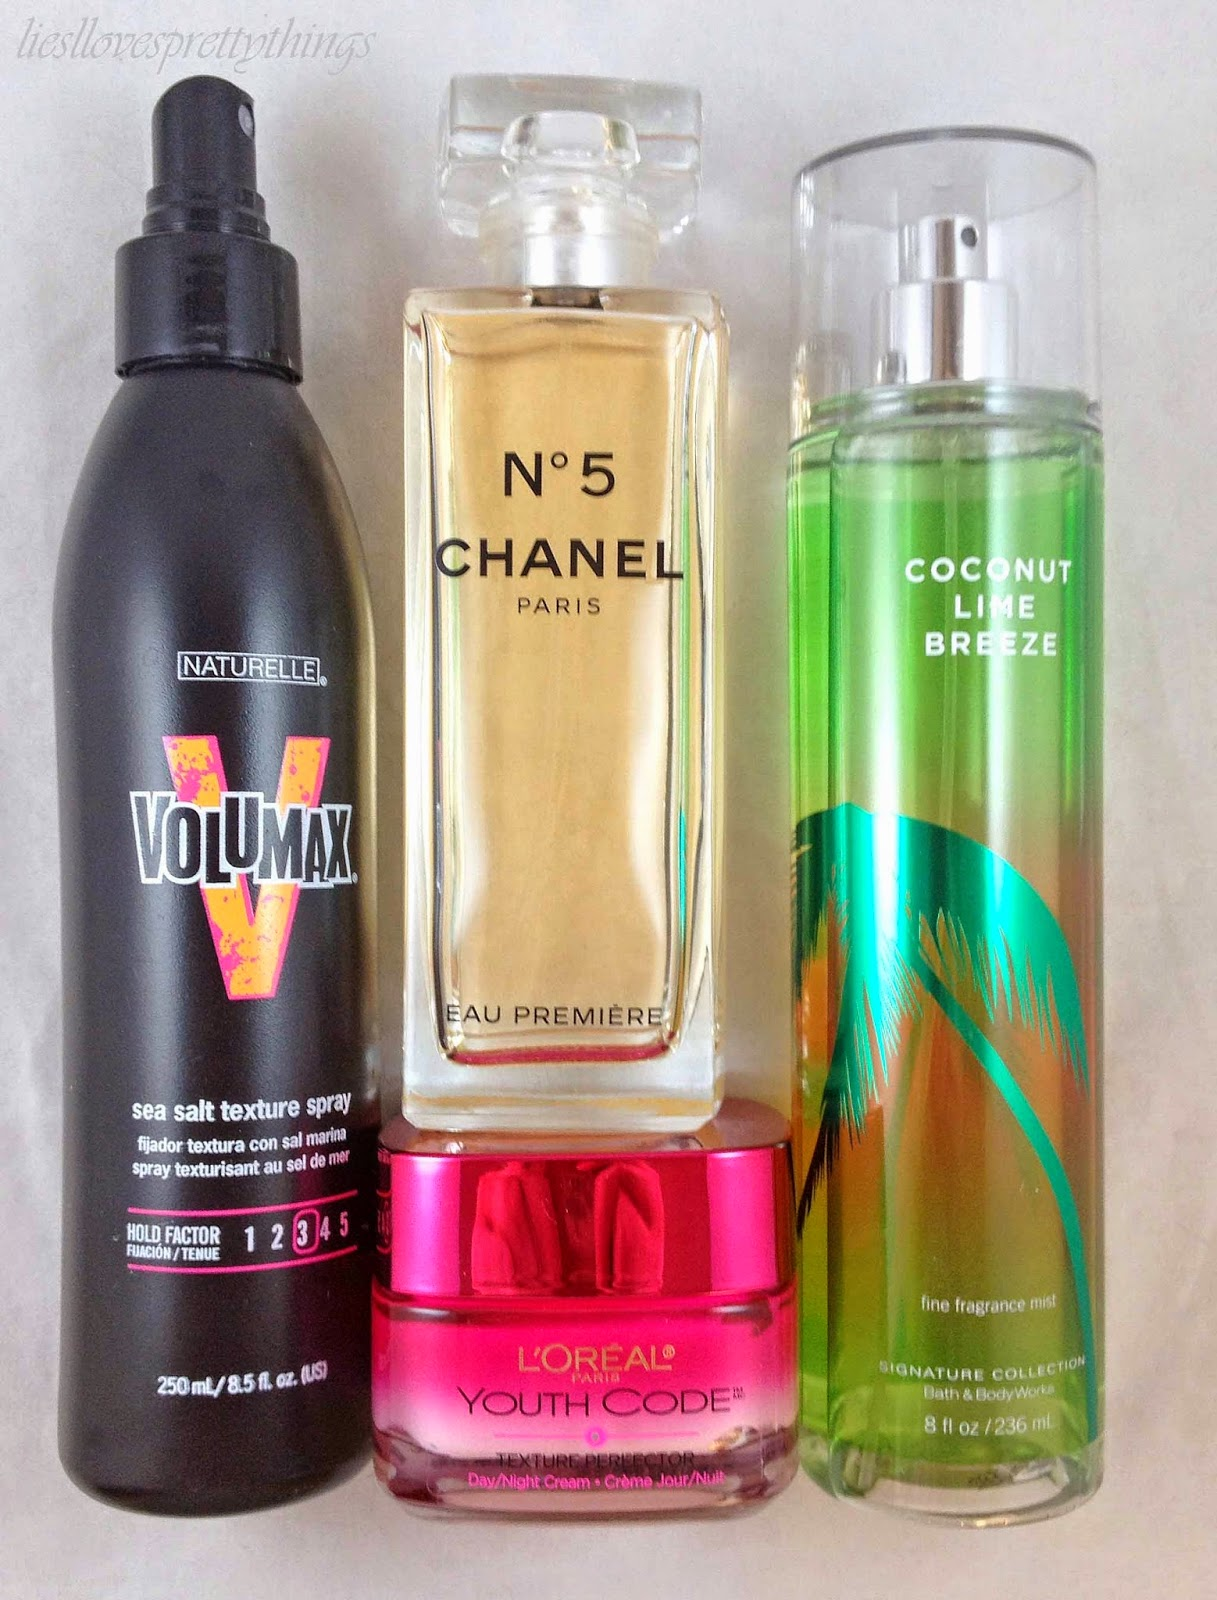 Naturelle Volumax, L'Oreal Youth Code, Chanel Eau Premiere, Bath and Body Works Coconut Lime Breeze